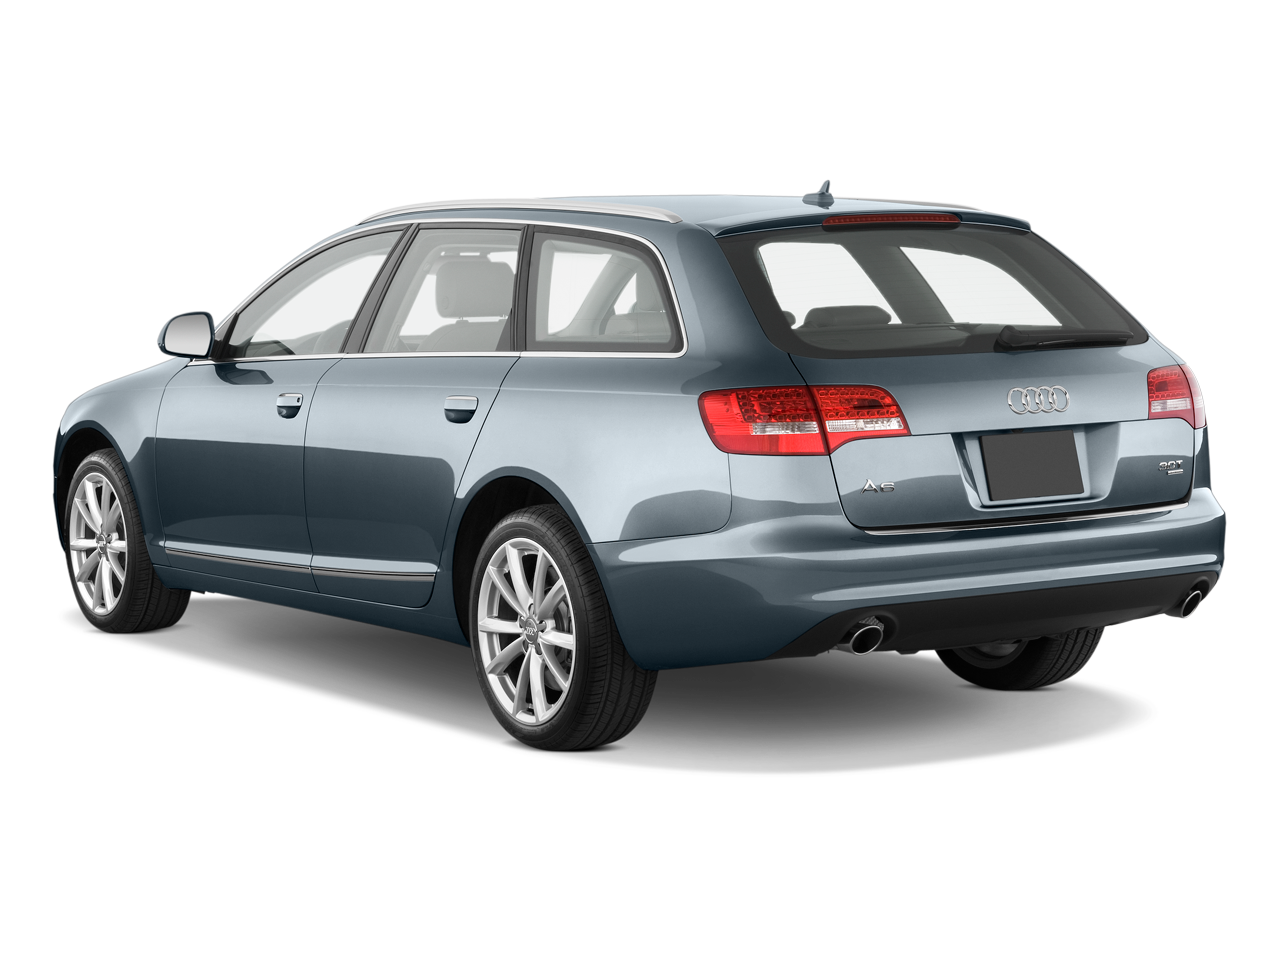 2009 Audi A6 And S6 New Audi A6 S6 Rs6 Luxury Sedan